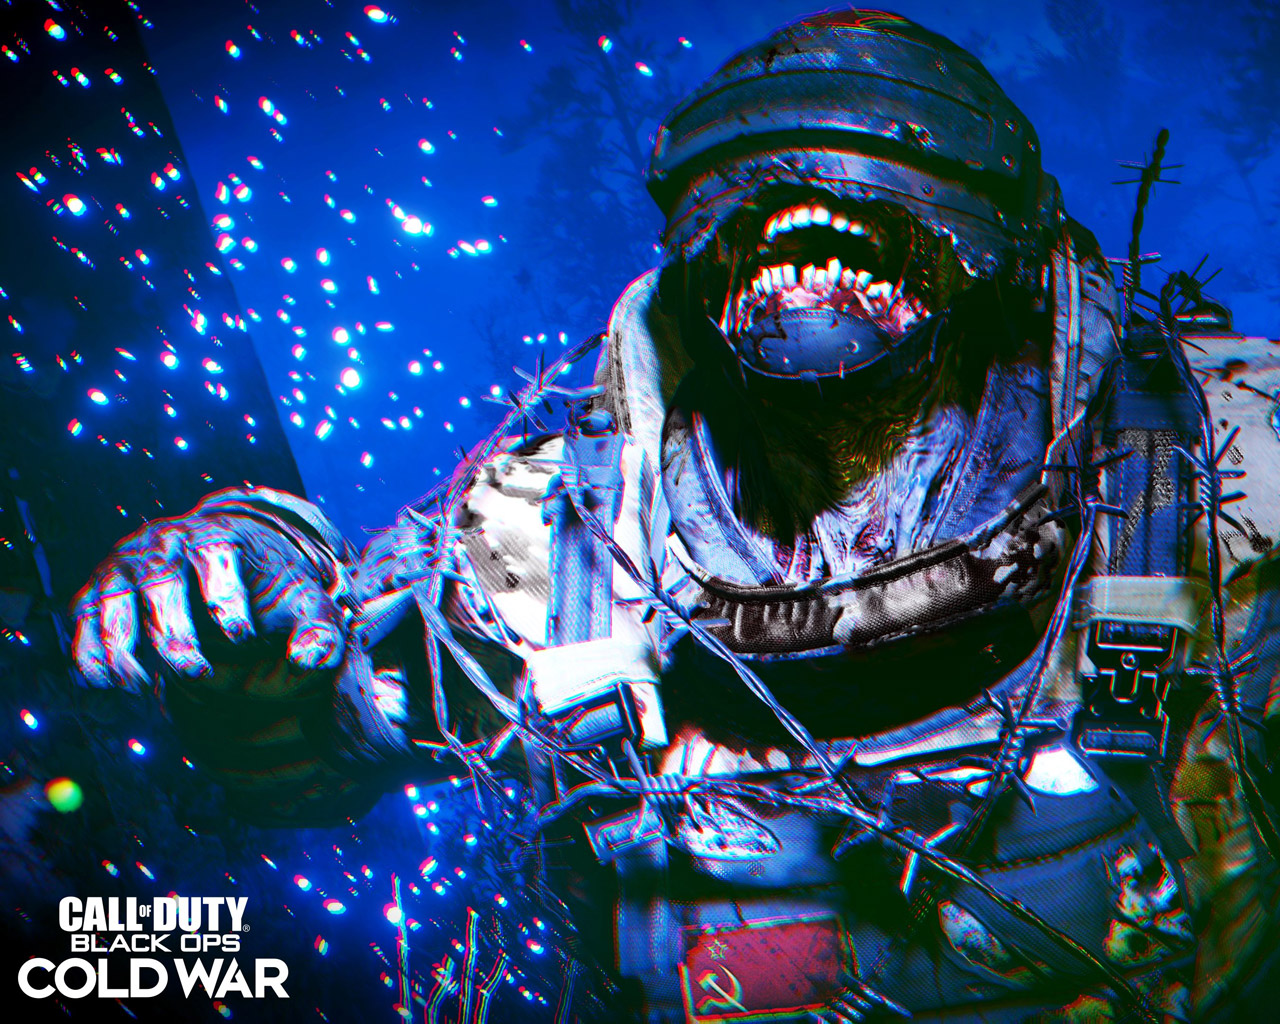 Free Call of Duty: Black Ops Cold War Wallpaper in 1280x1024